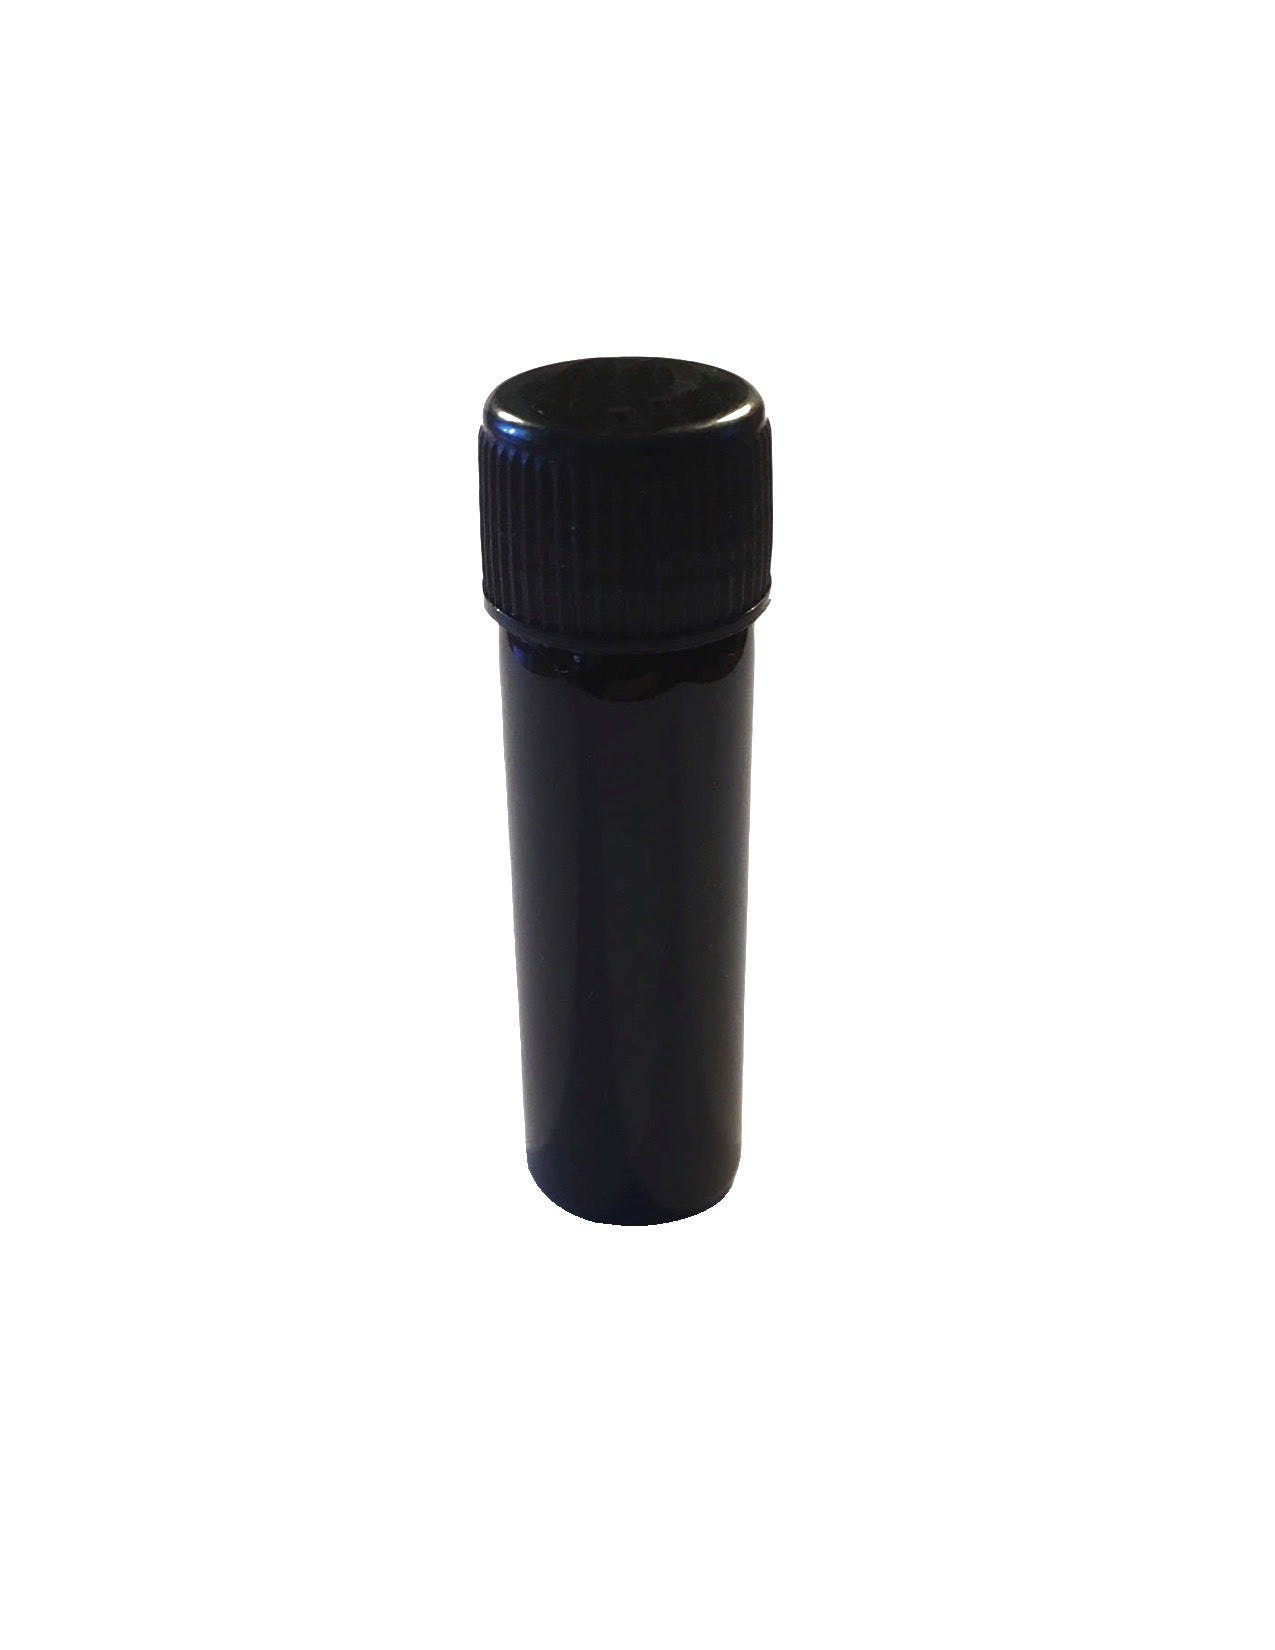 gear-5-gram-vial-of-oil